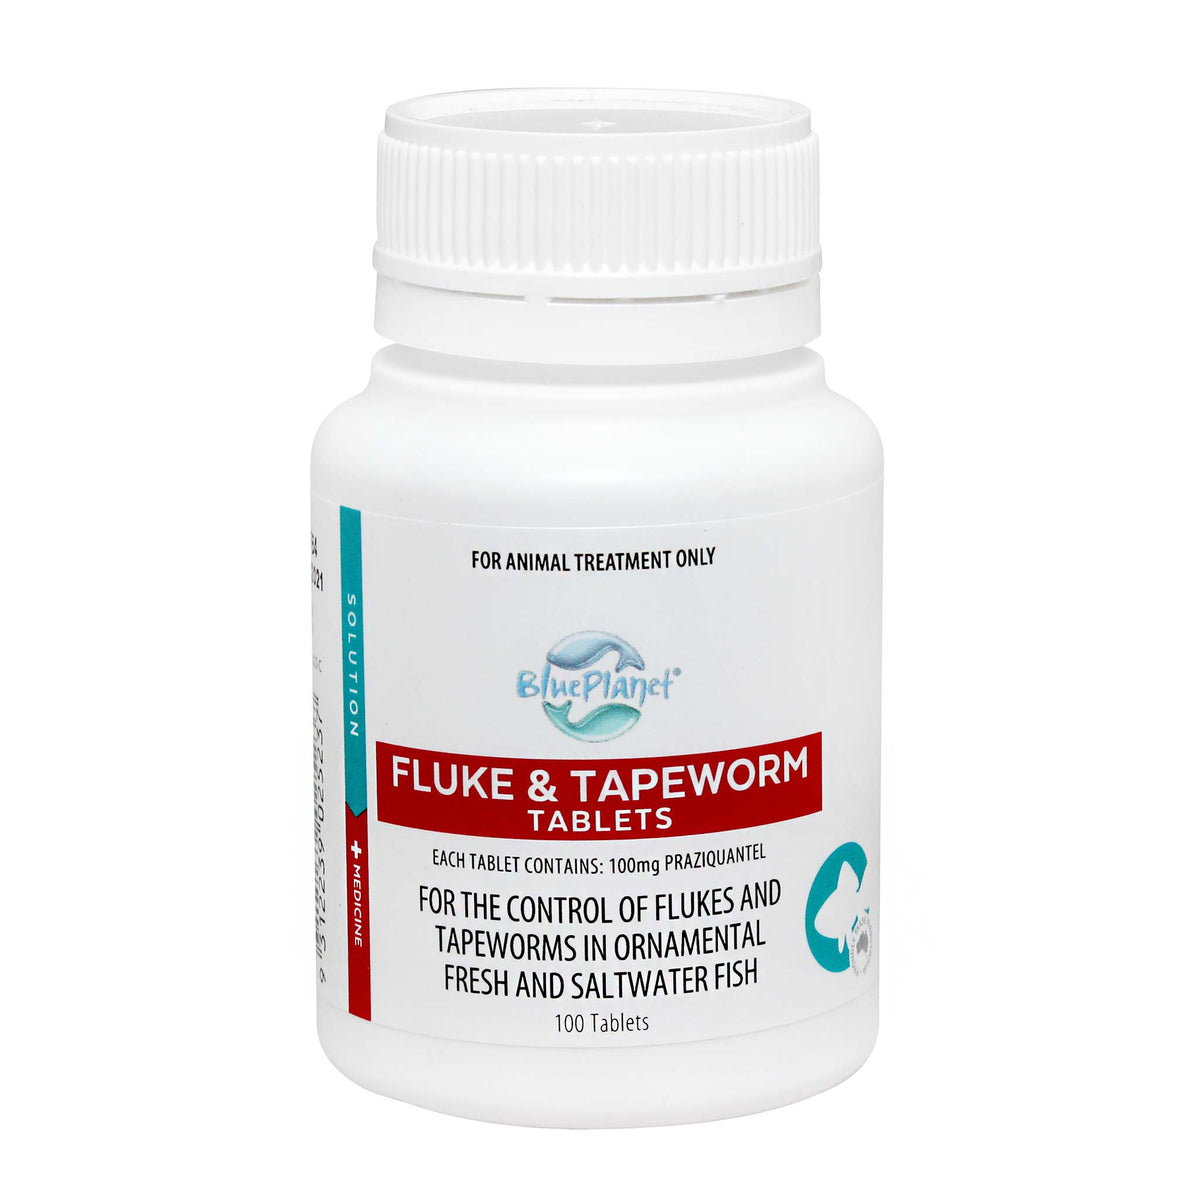 Blue Planet Fluke and Tapeworm Tablets